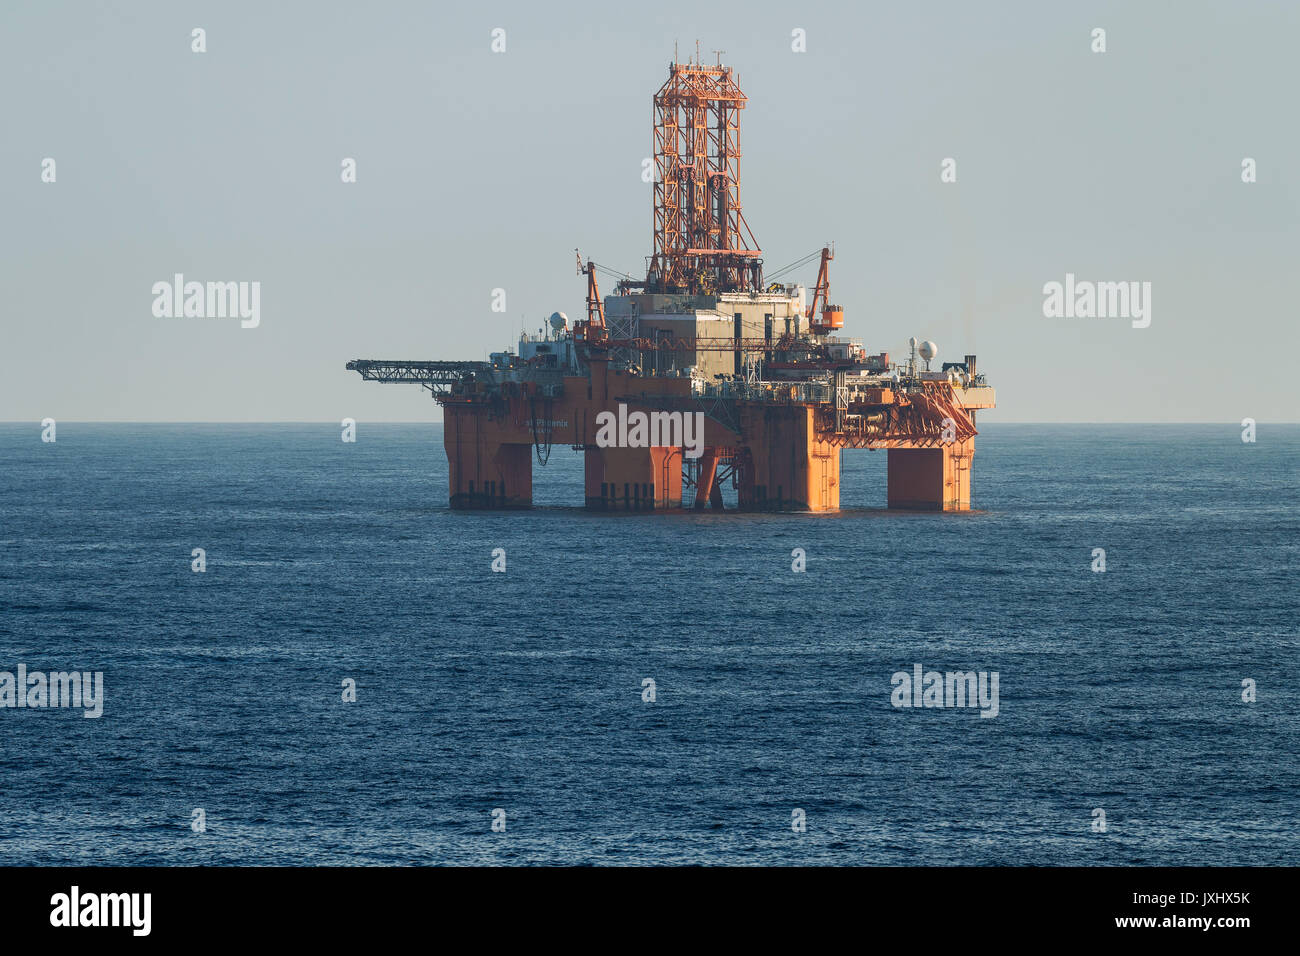 oil rig helicopter with North Sea Rig on C  Roberts Range 9 likewise Dmo Flight Design S 92 Sikorsky For X Plane also In Great Waters The Offshore Helicopter Business also Eachmanufacturer Designs Its Own Fuel as well Construx Oil Platform.